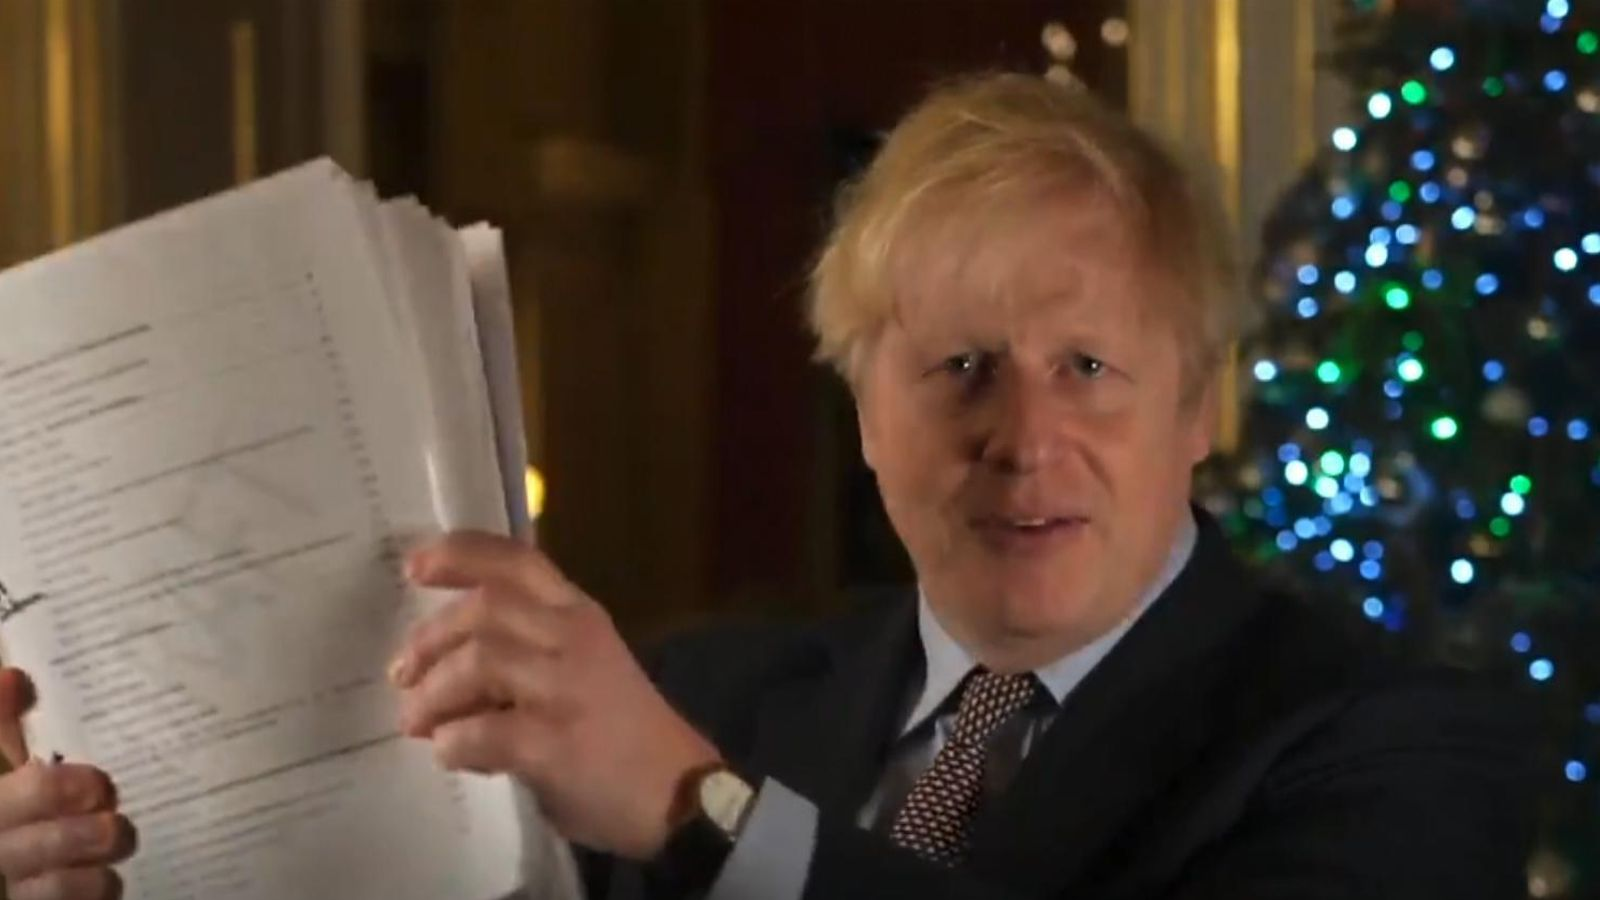 Brexit: Boris Johnson says trade deal is his Christmas gift    UK News